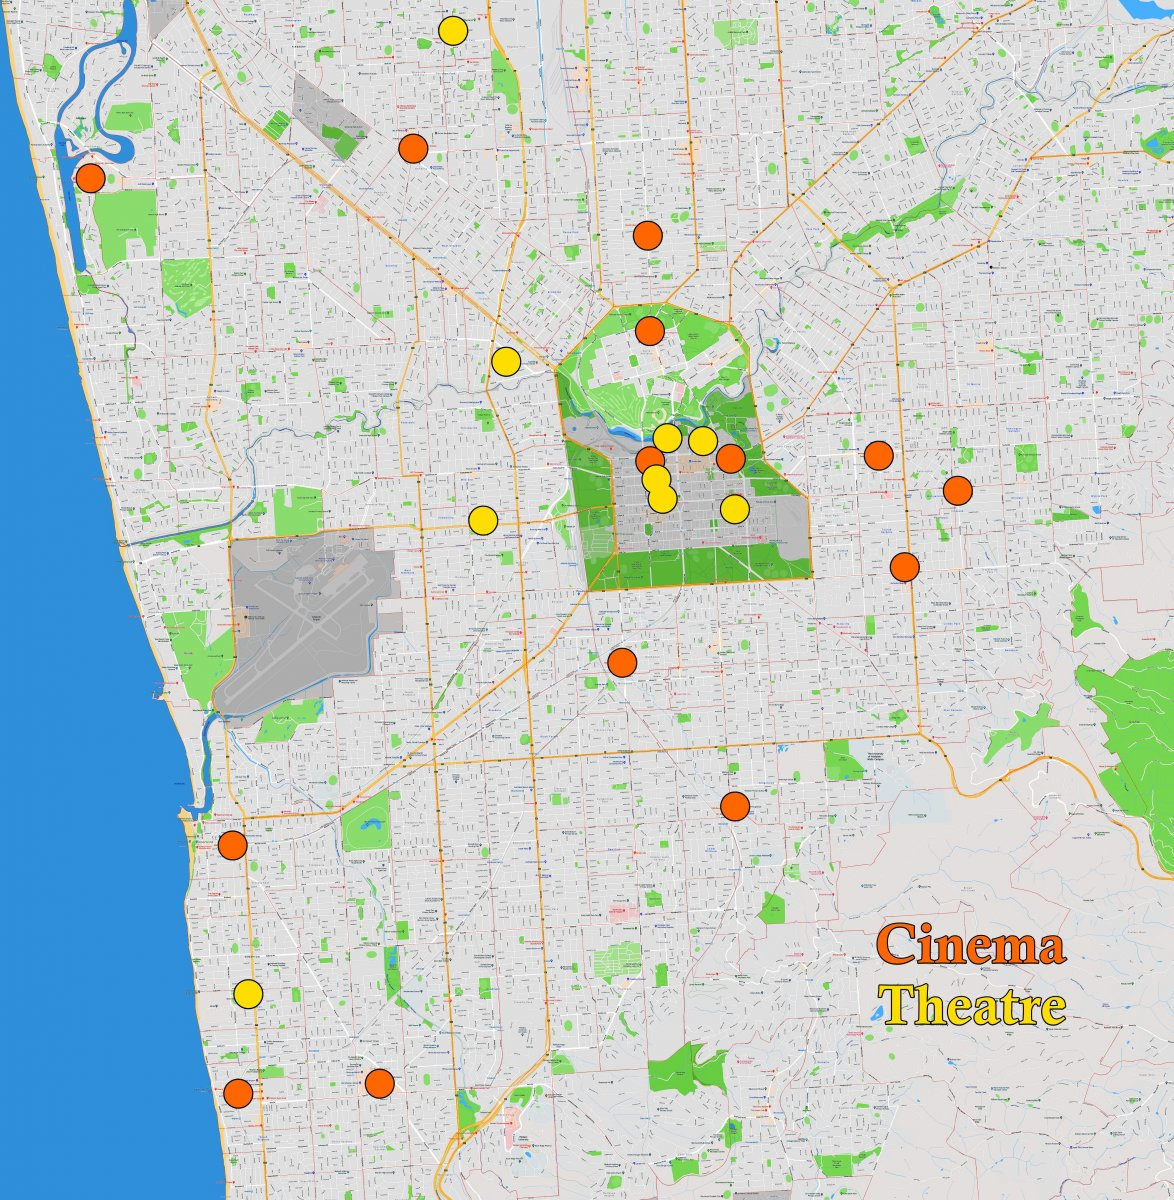 Adelaide Suburb Map - Cinemas & Theatres - April 2019 Smaller